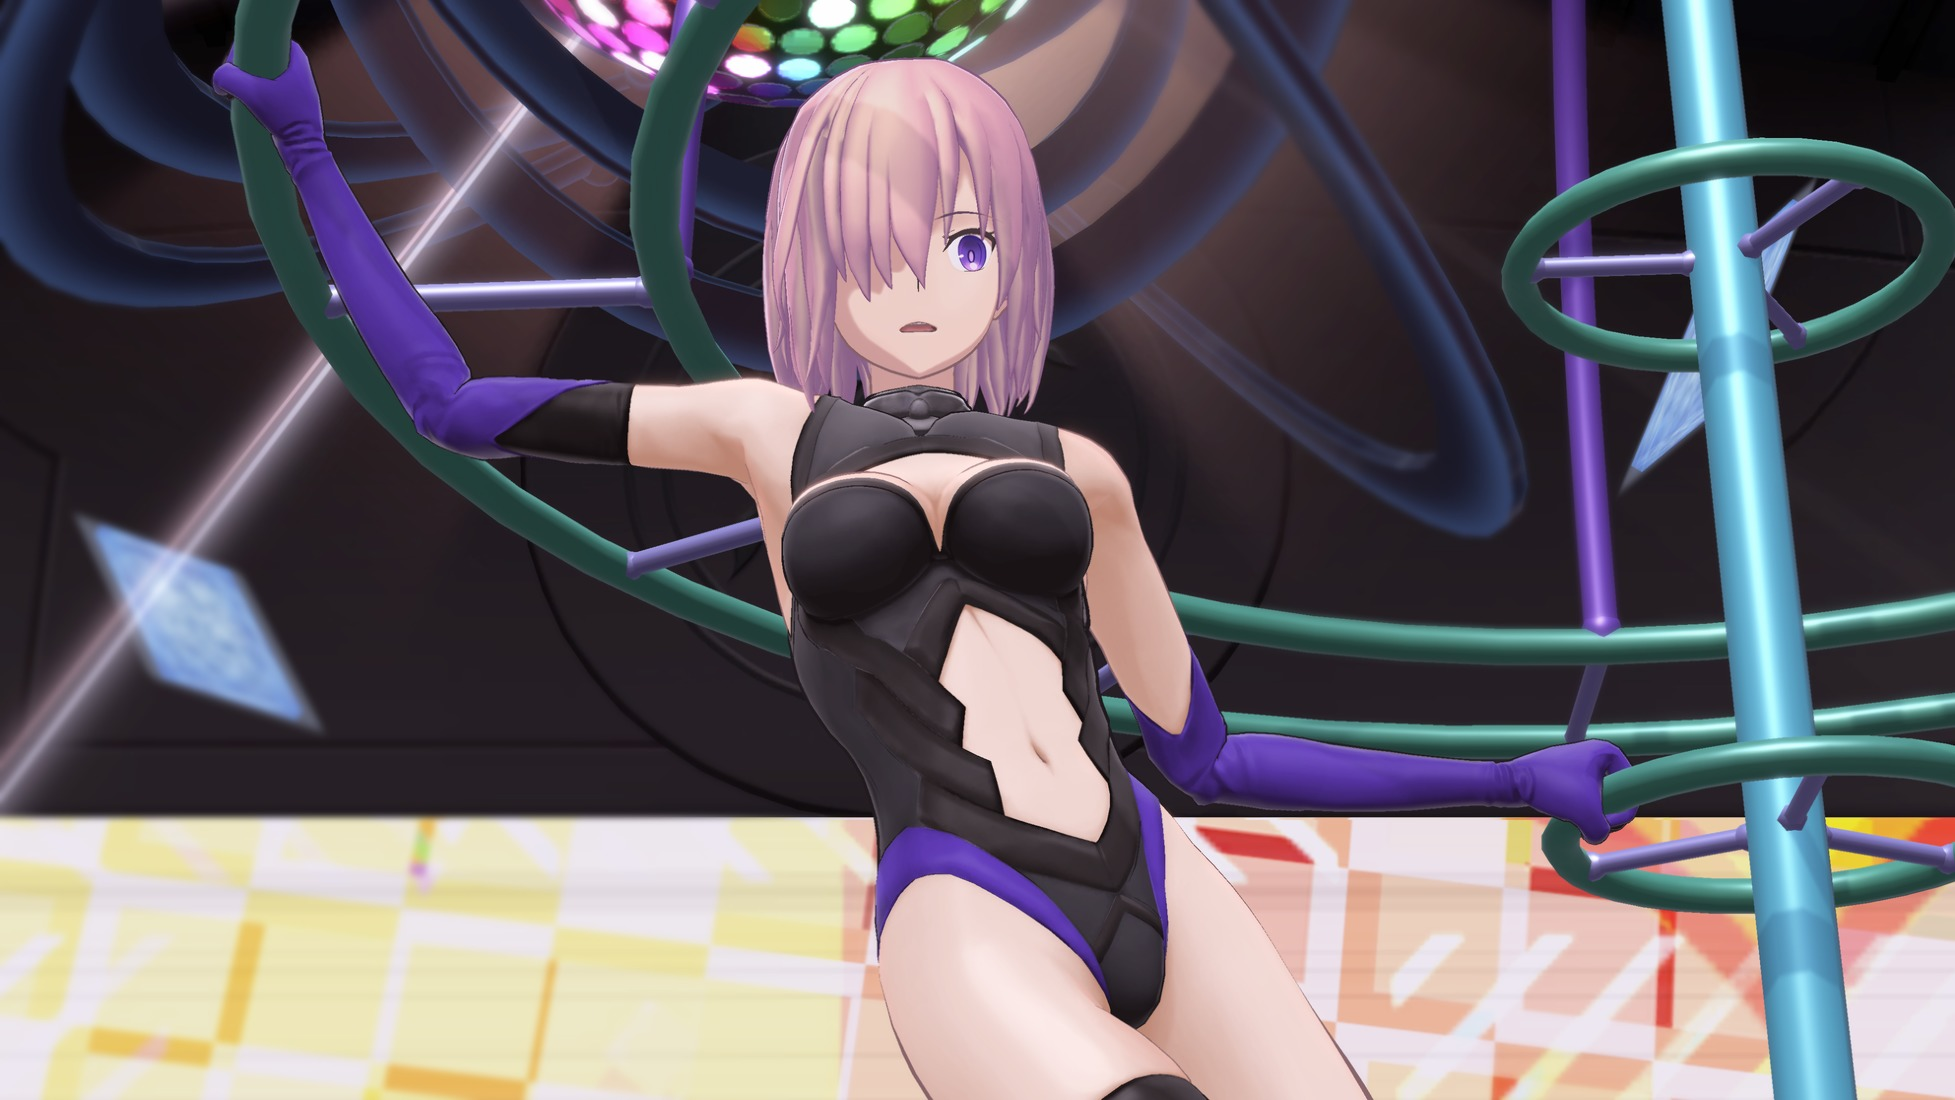 Fate/Grand Order VR Featuring Mashu Kyrielight - - Скриншот